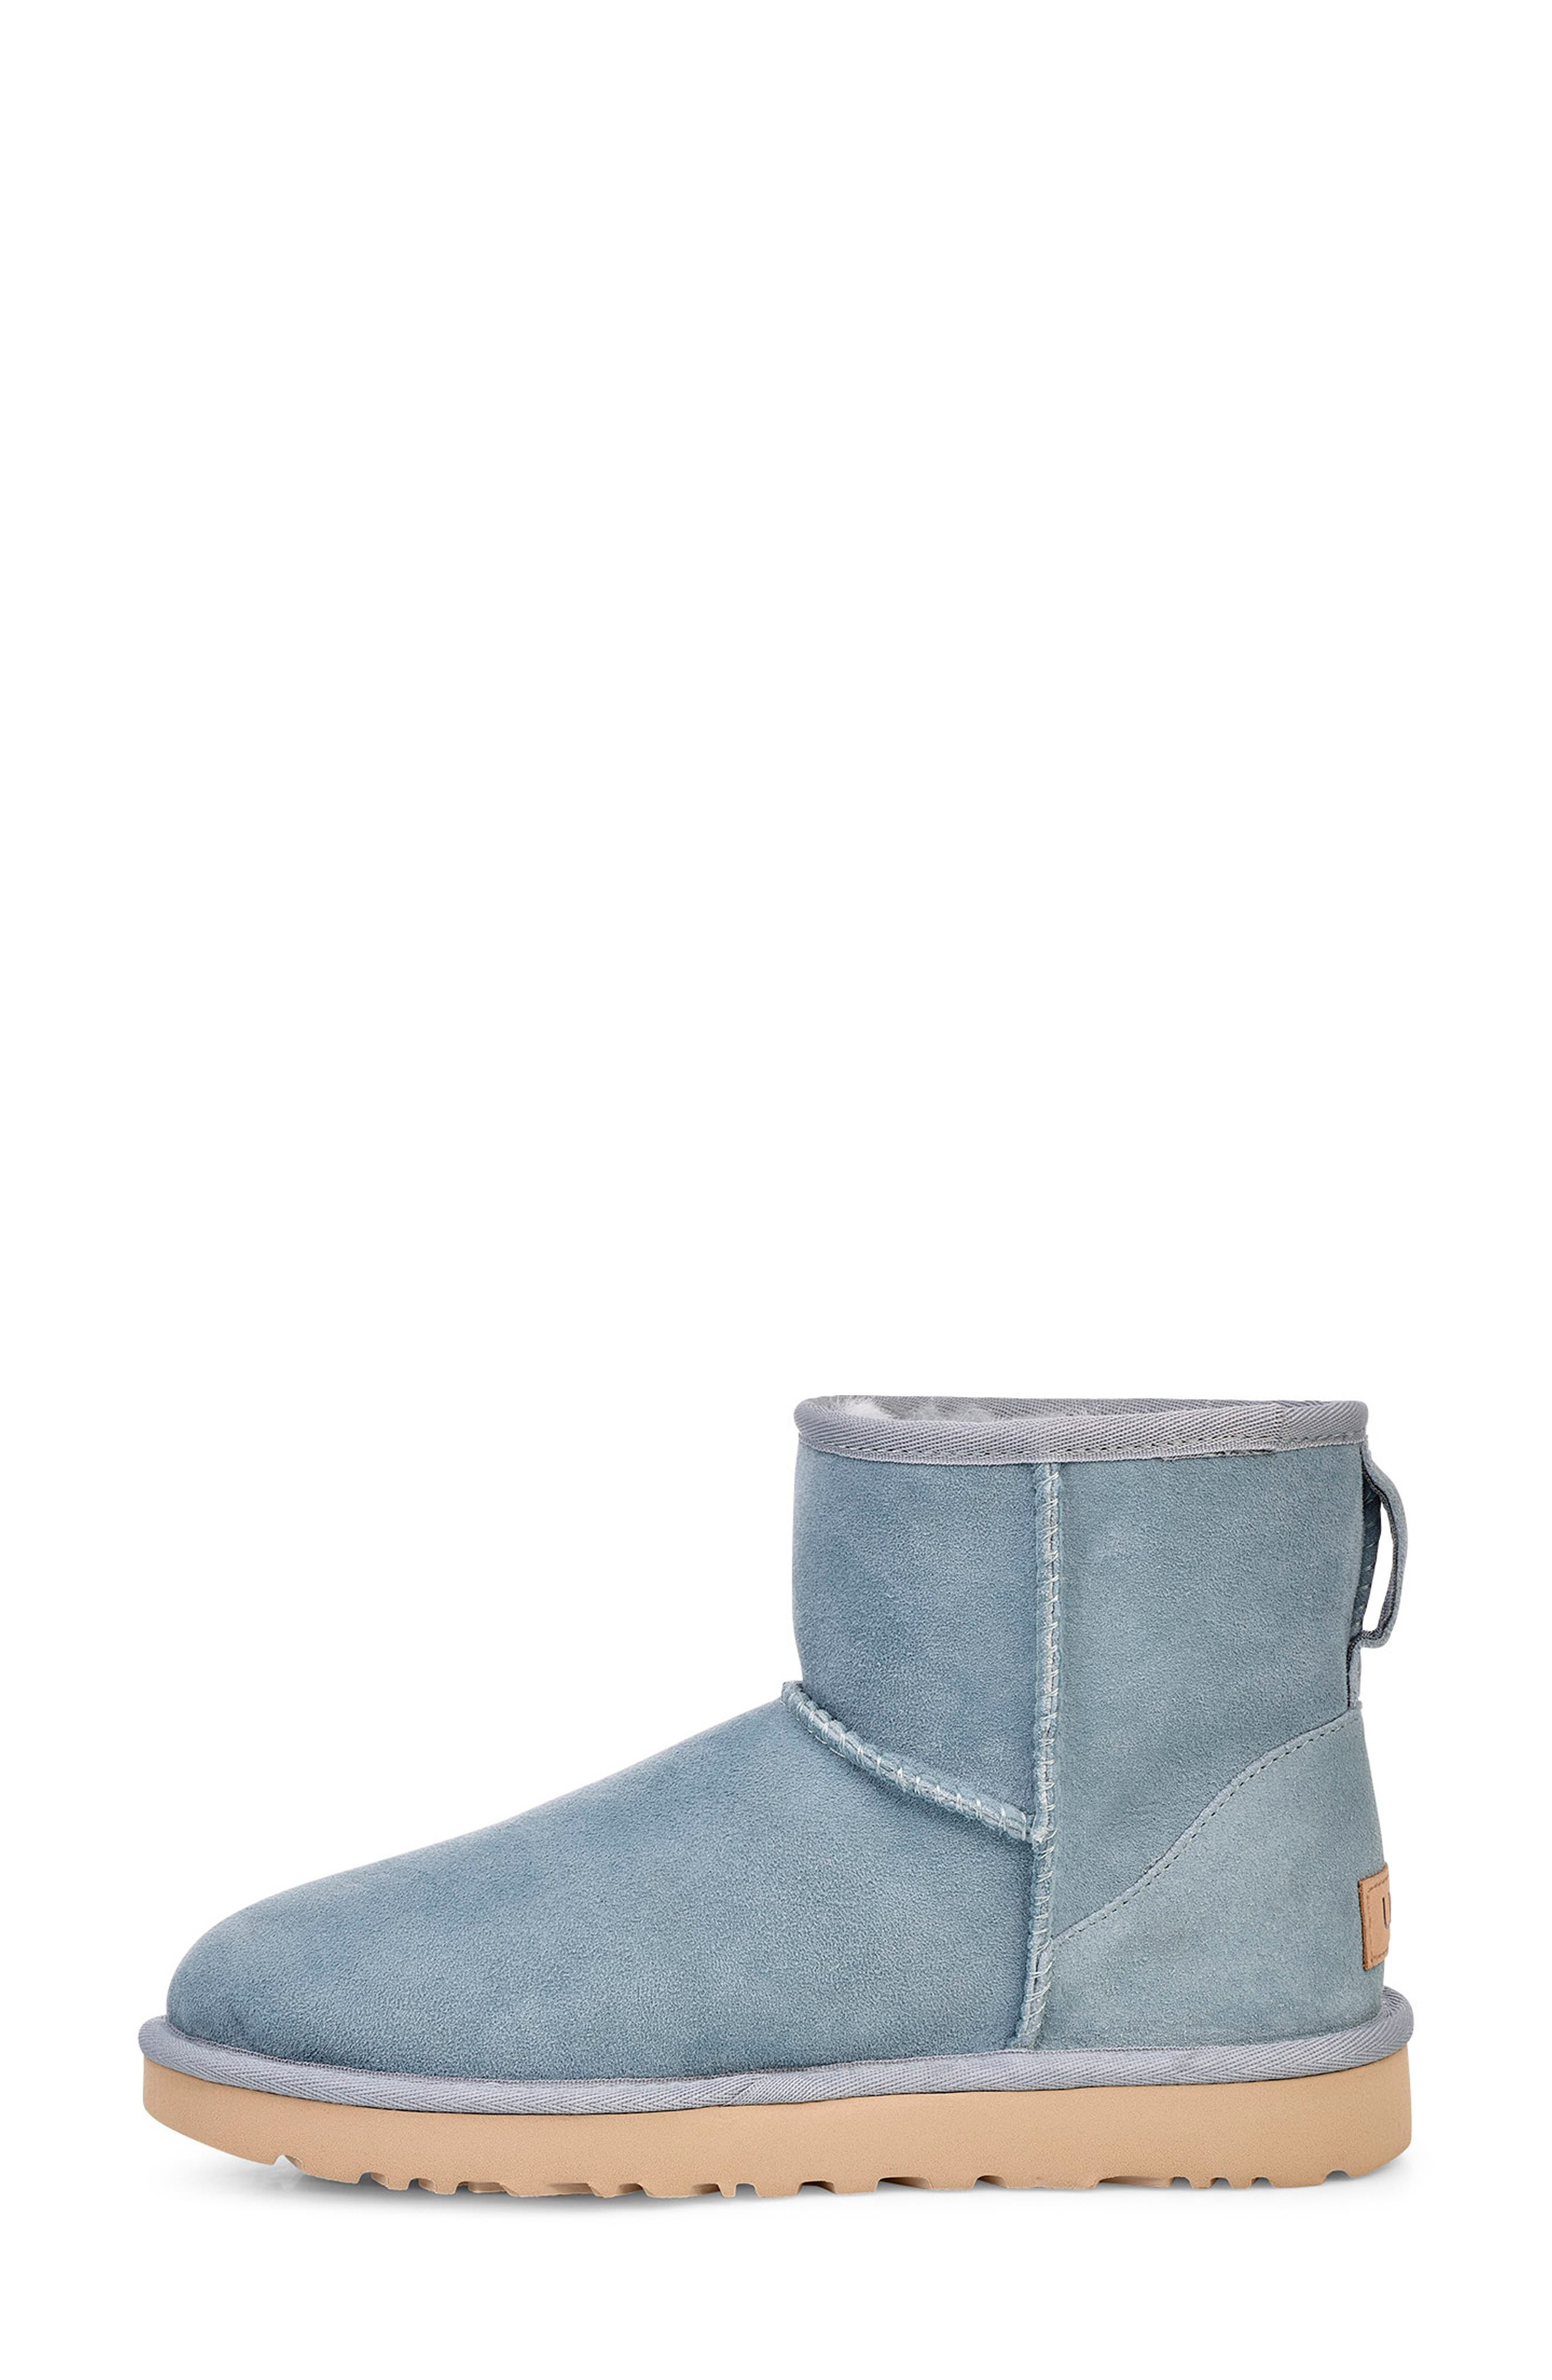 'Classic Mini II' Genuine Shearling Lined Boot,                             Alternate thumbnail 6, color,                             SUCCULENT SUEDE